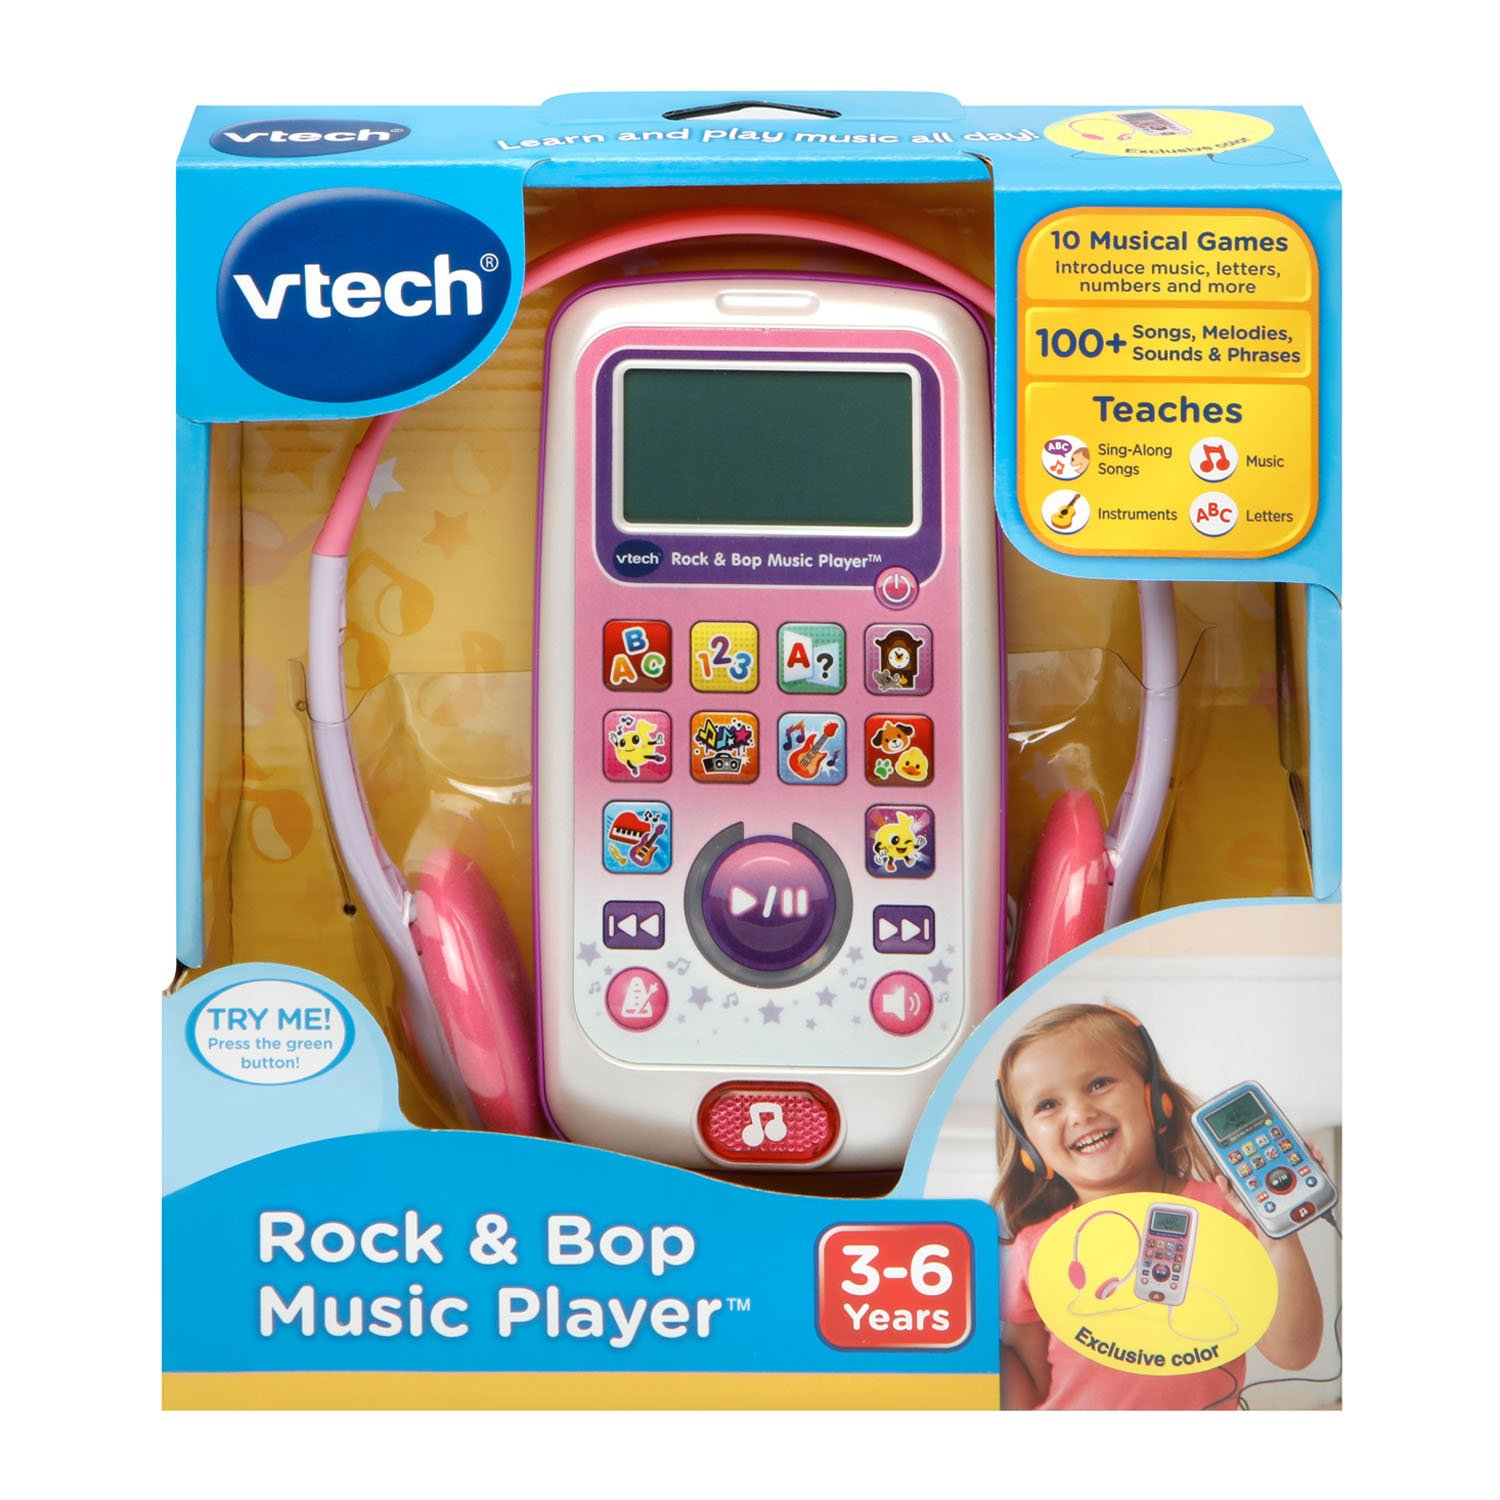 VTech Rock and Bop Music Player Amazon Exclusive, Pink by VTech (Image #6)